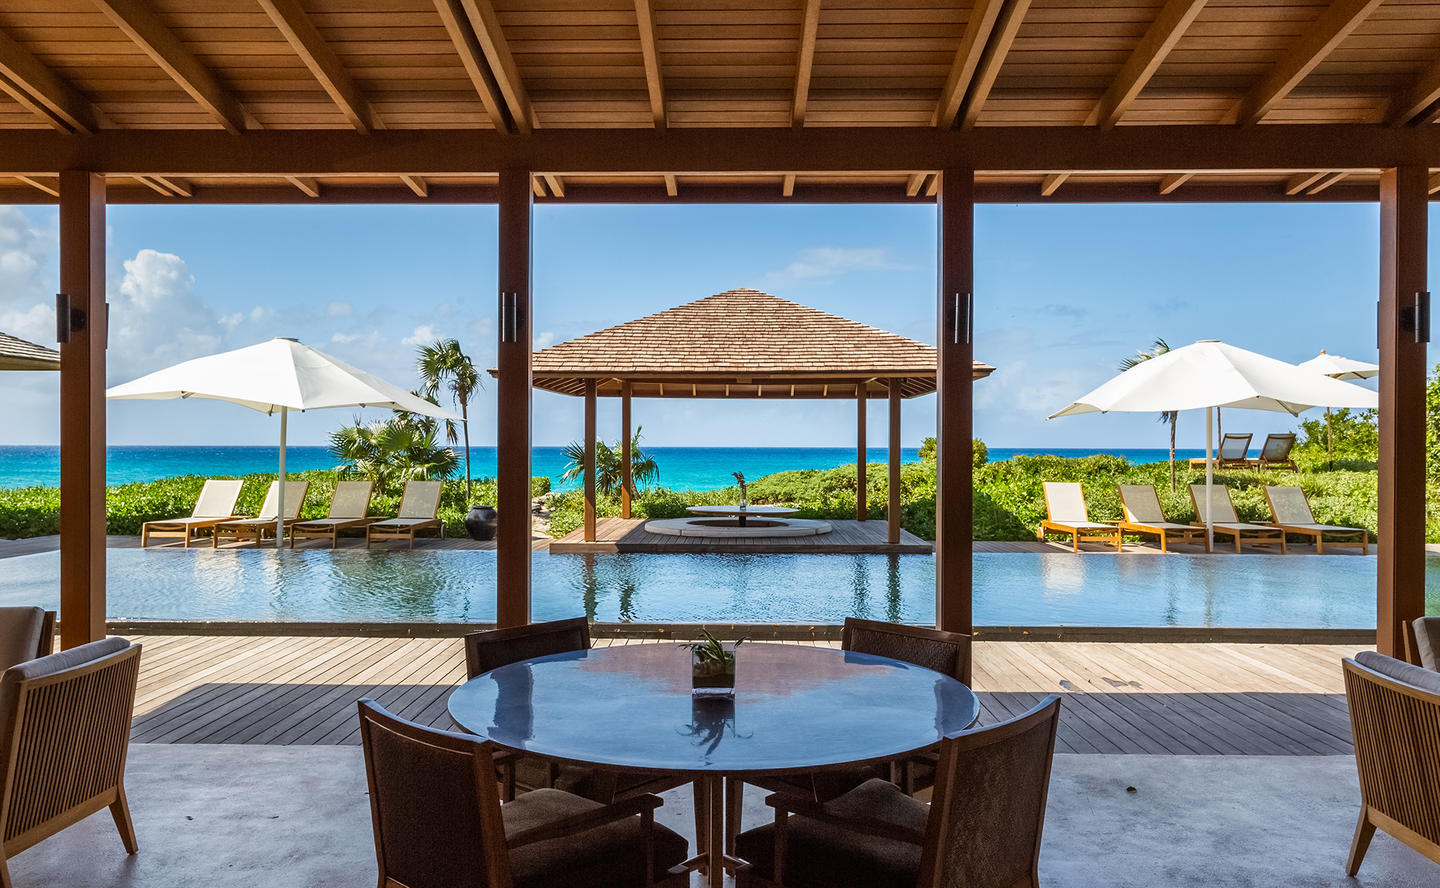 Swimming Pool & Terrace, Four-Bedroom Deluxe Beach Sala Villa - Amanyara, Turks & Caicos